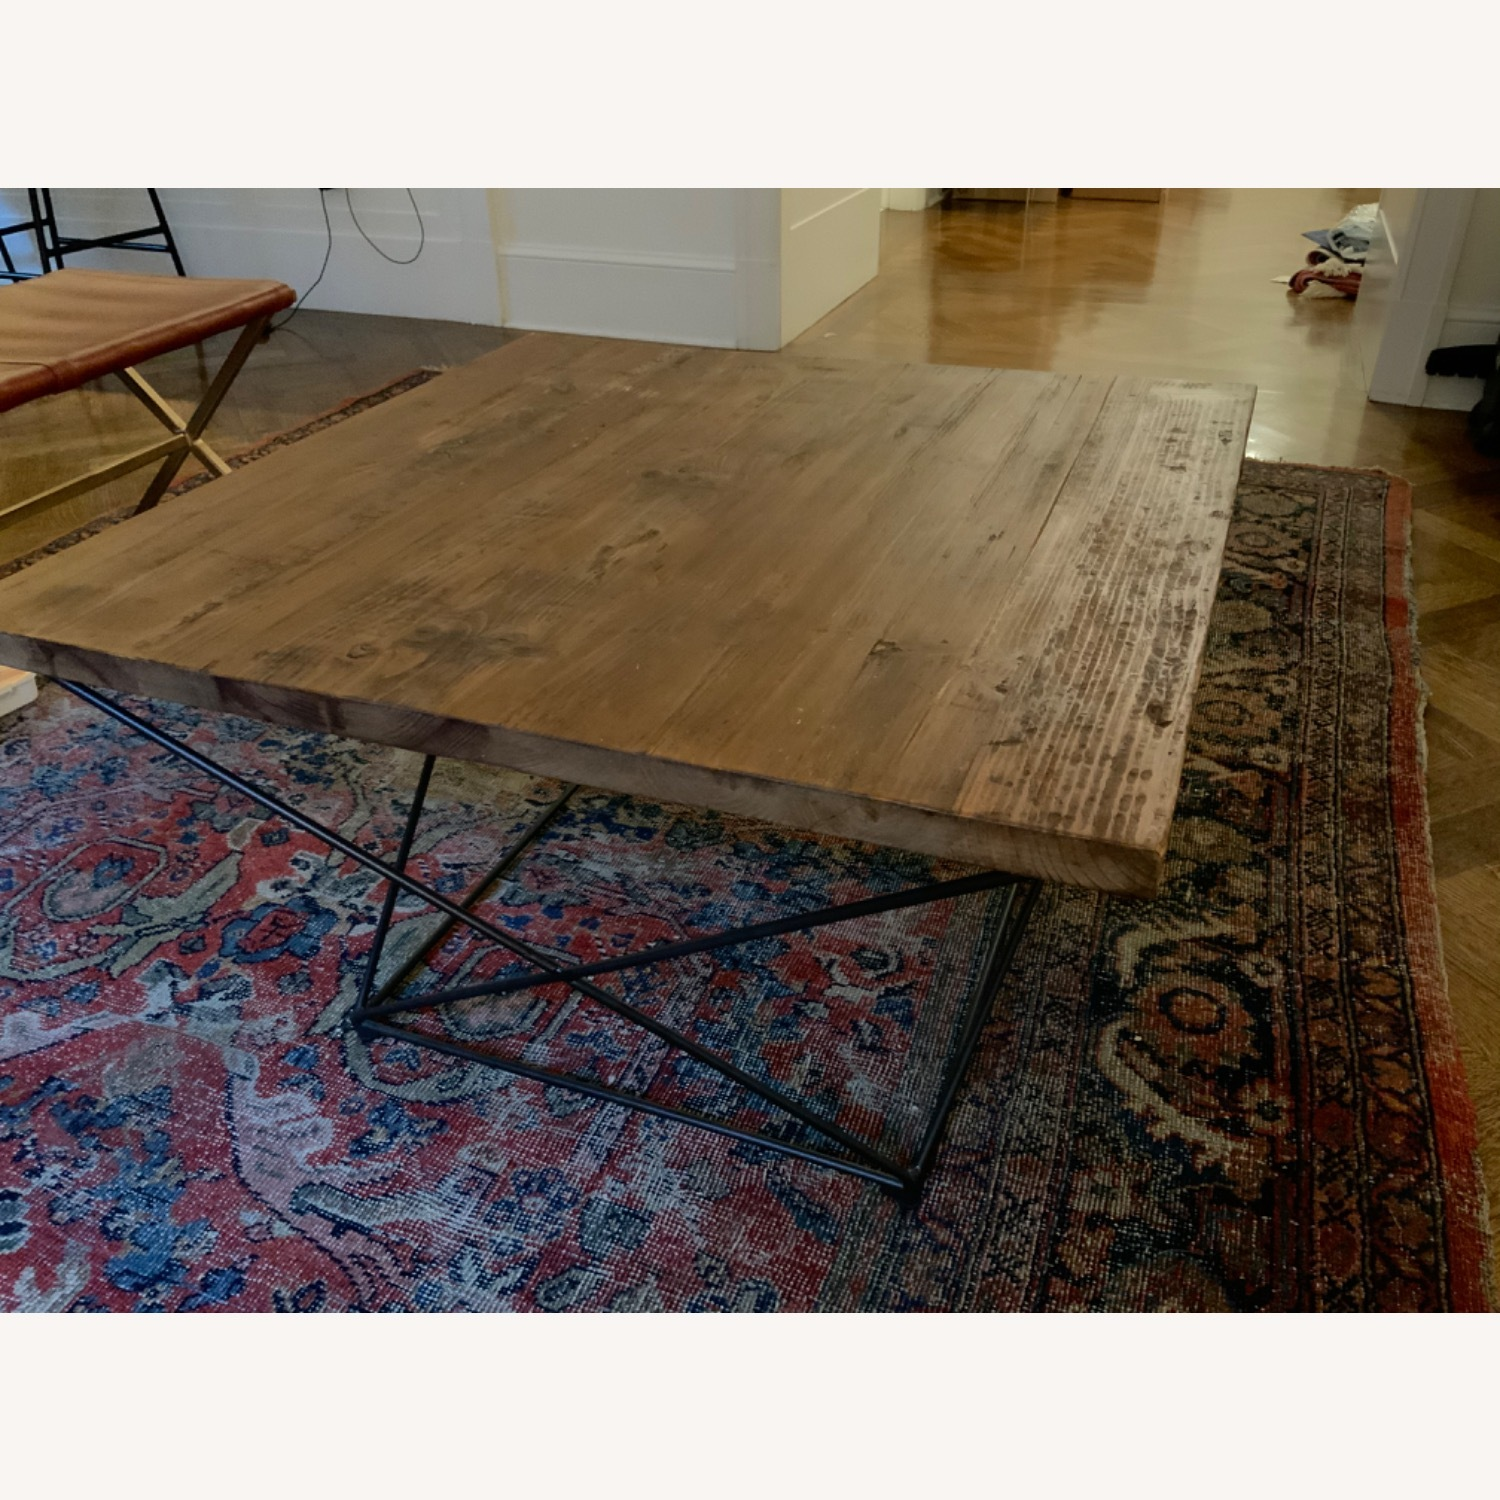 West Elm Reclaimed Wood Coffee Table - image-6